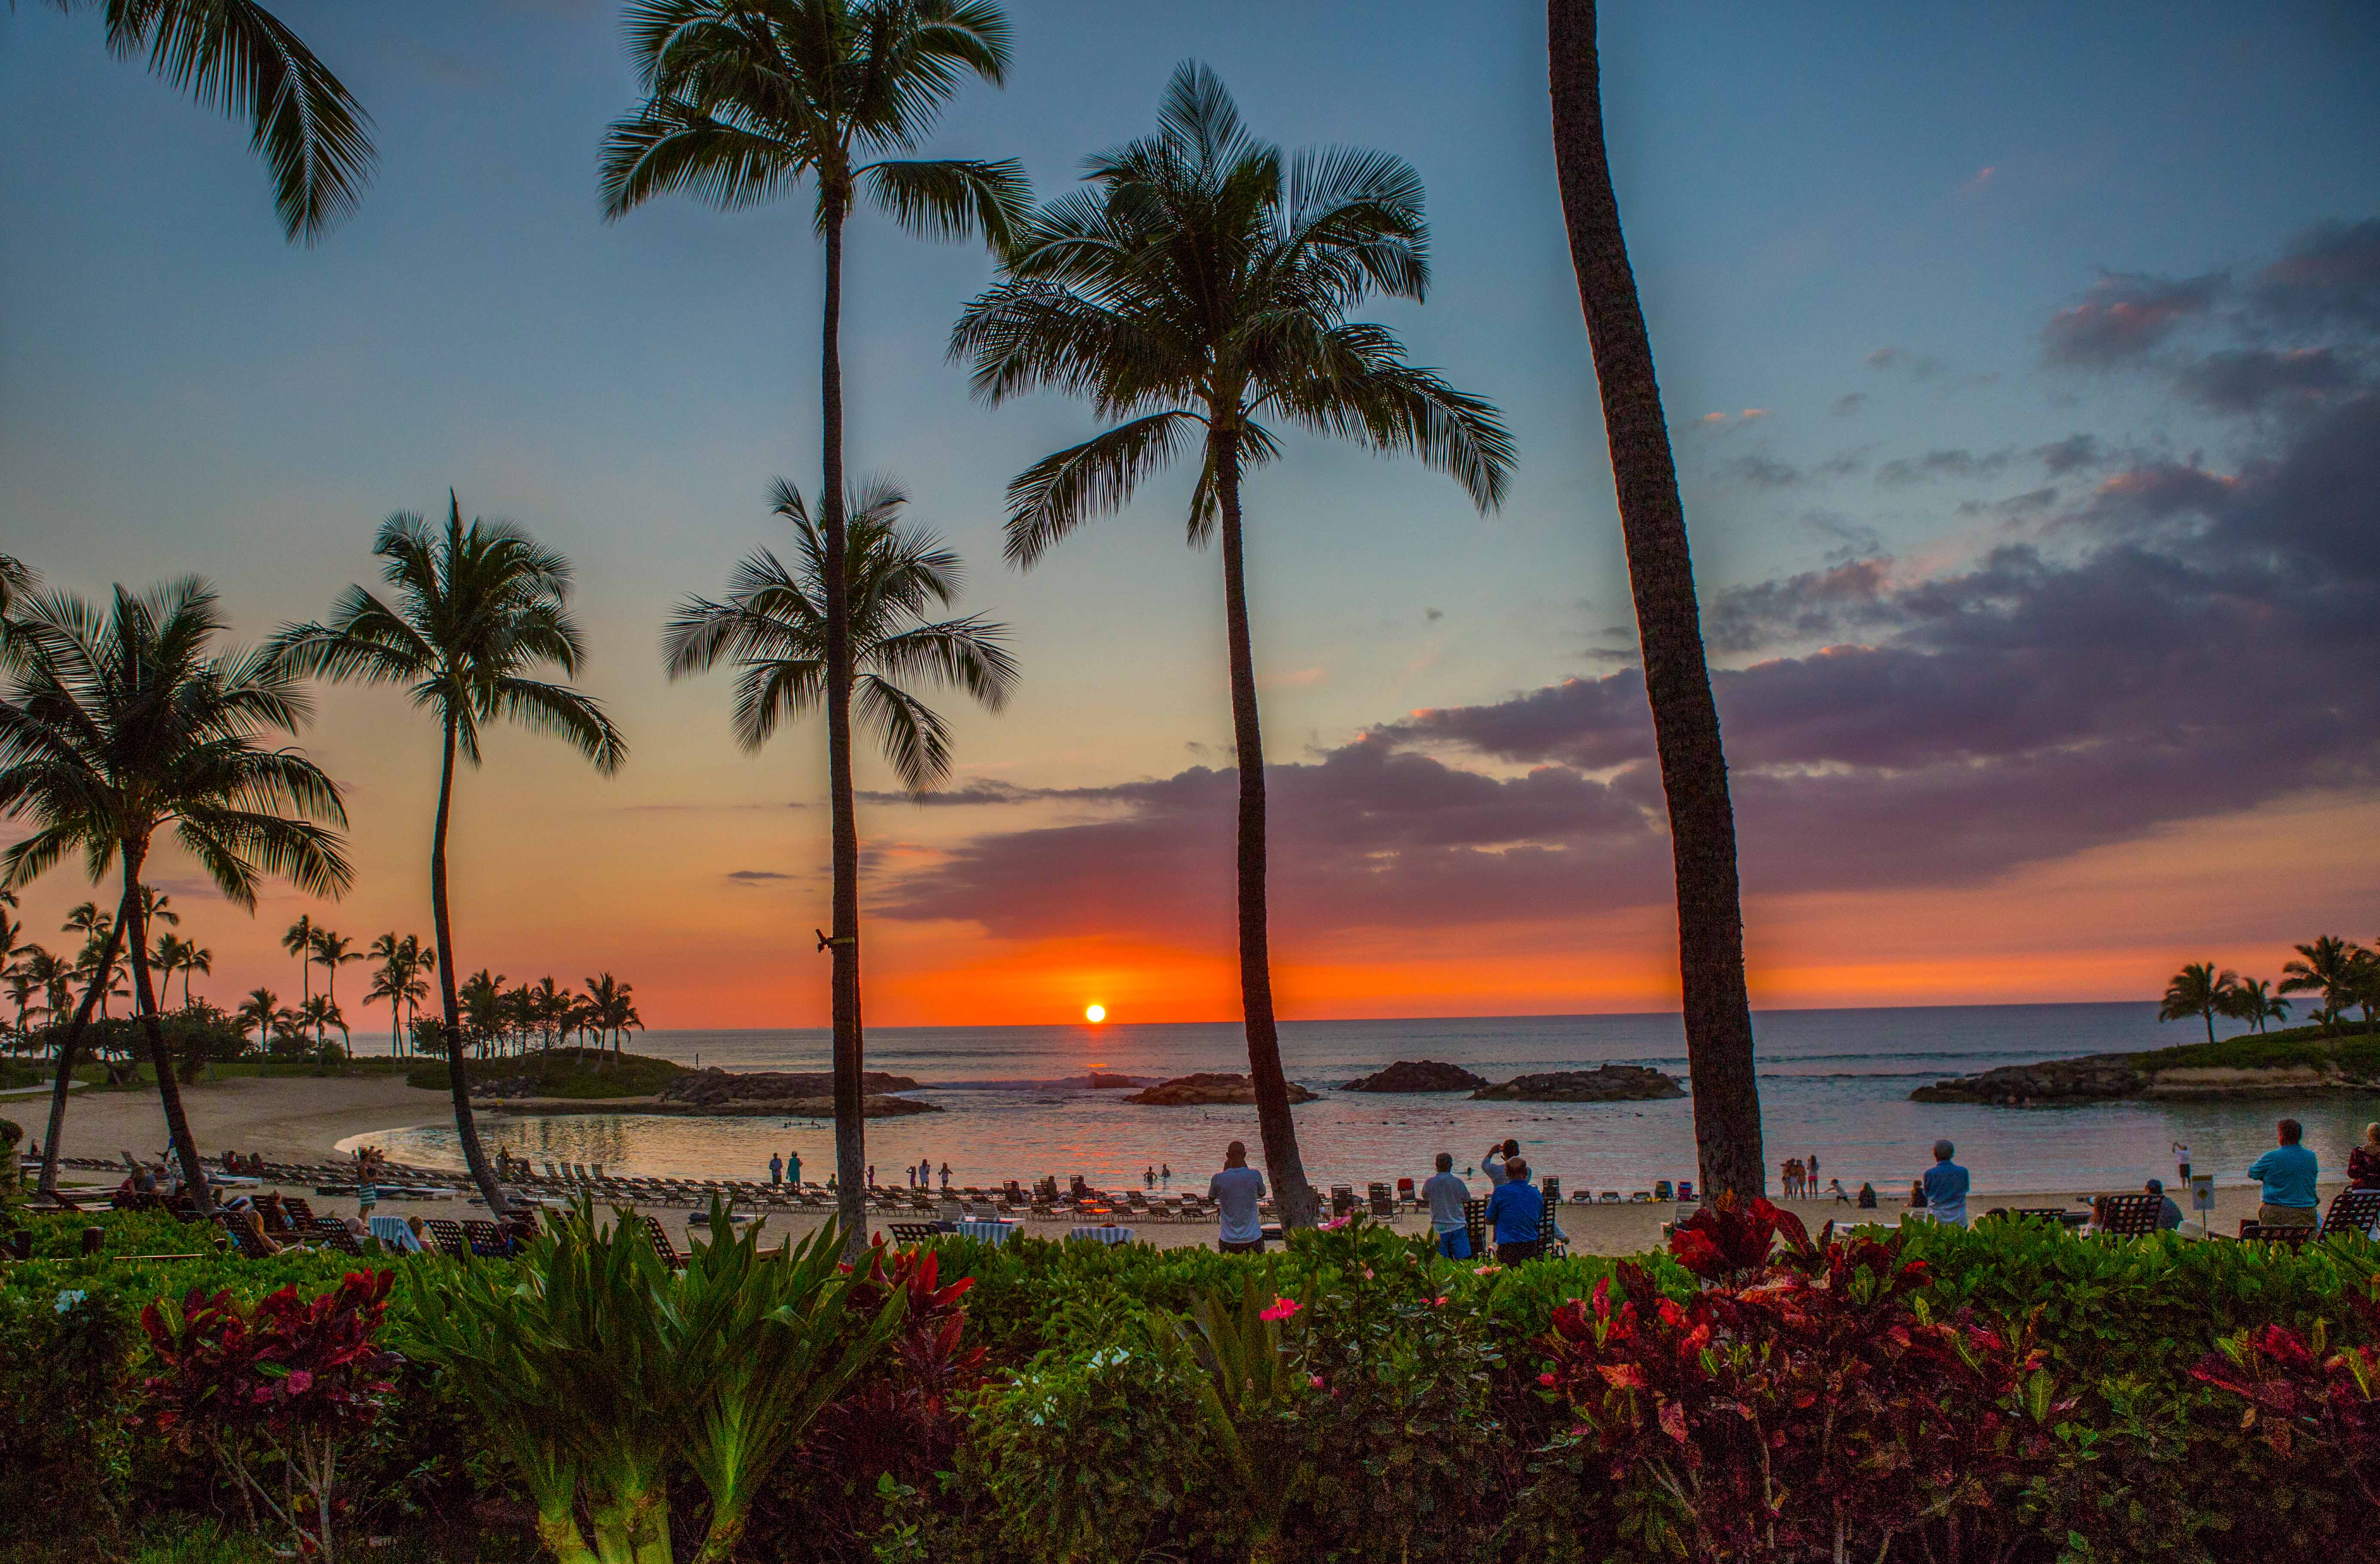 Hawaii Photographers Just Want To Have Fun